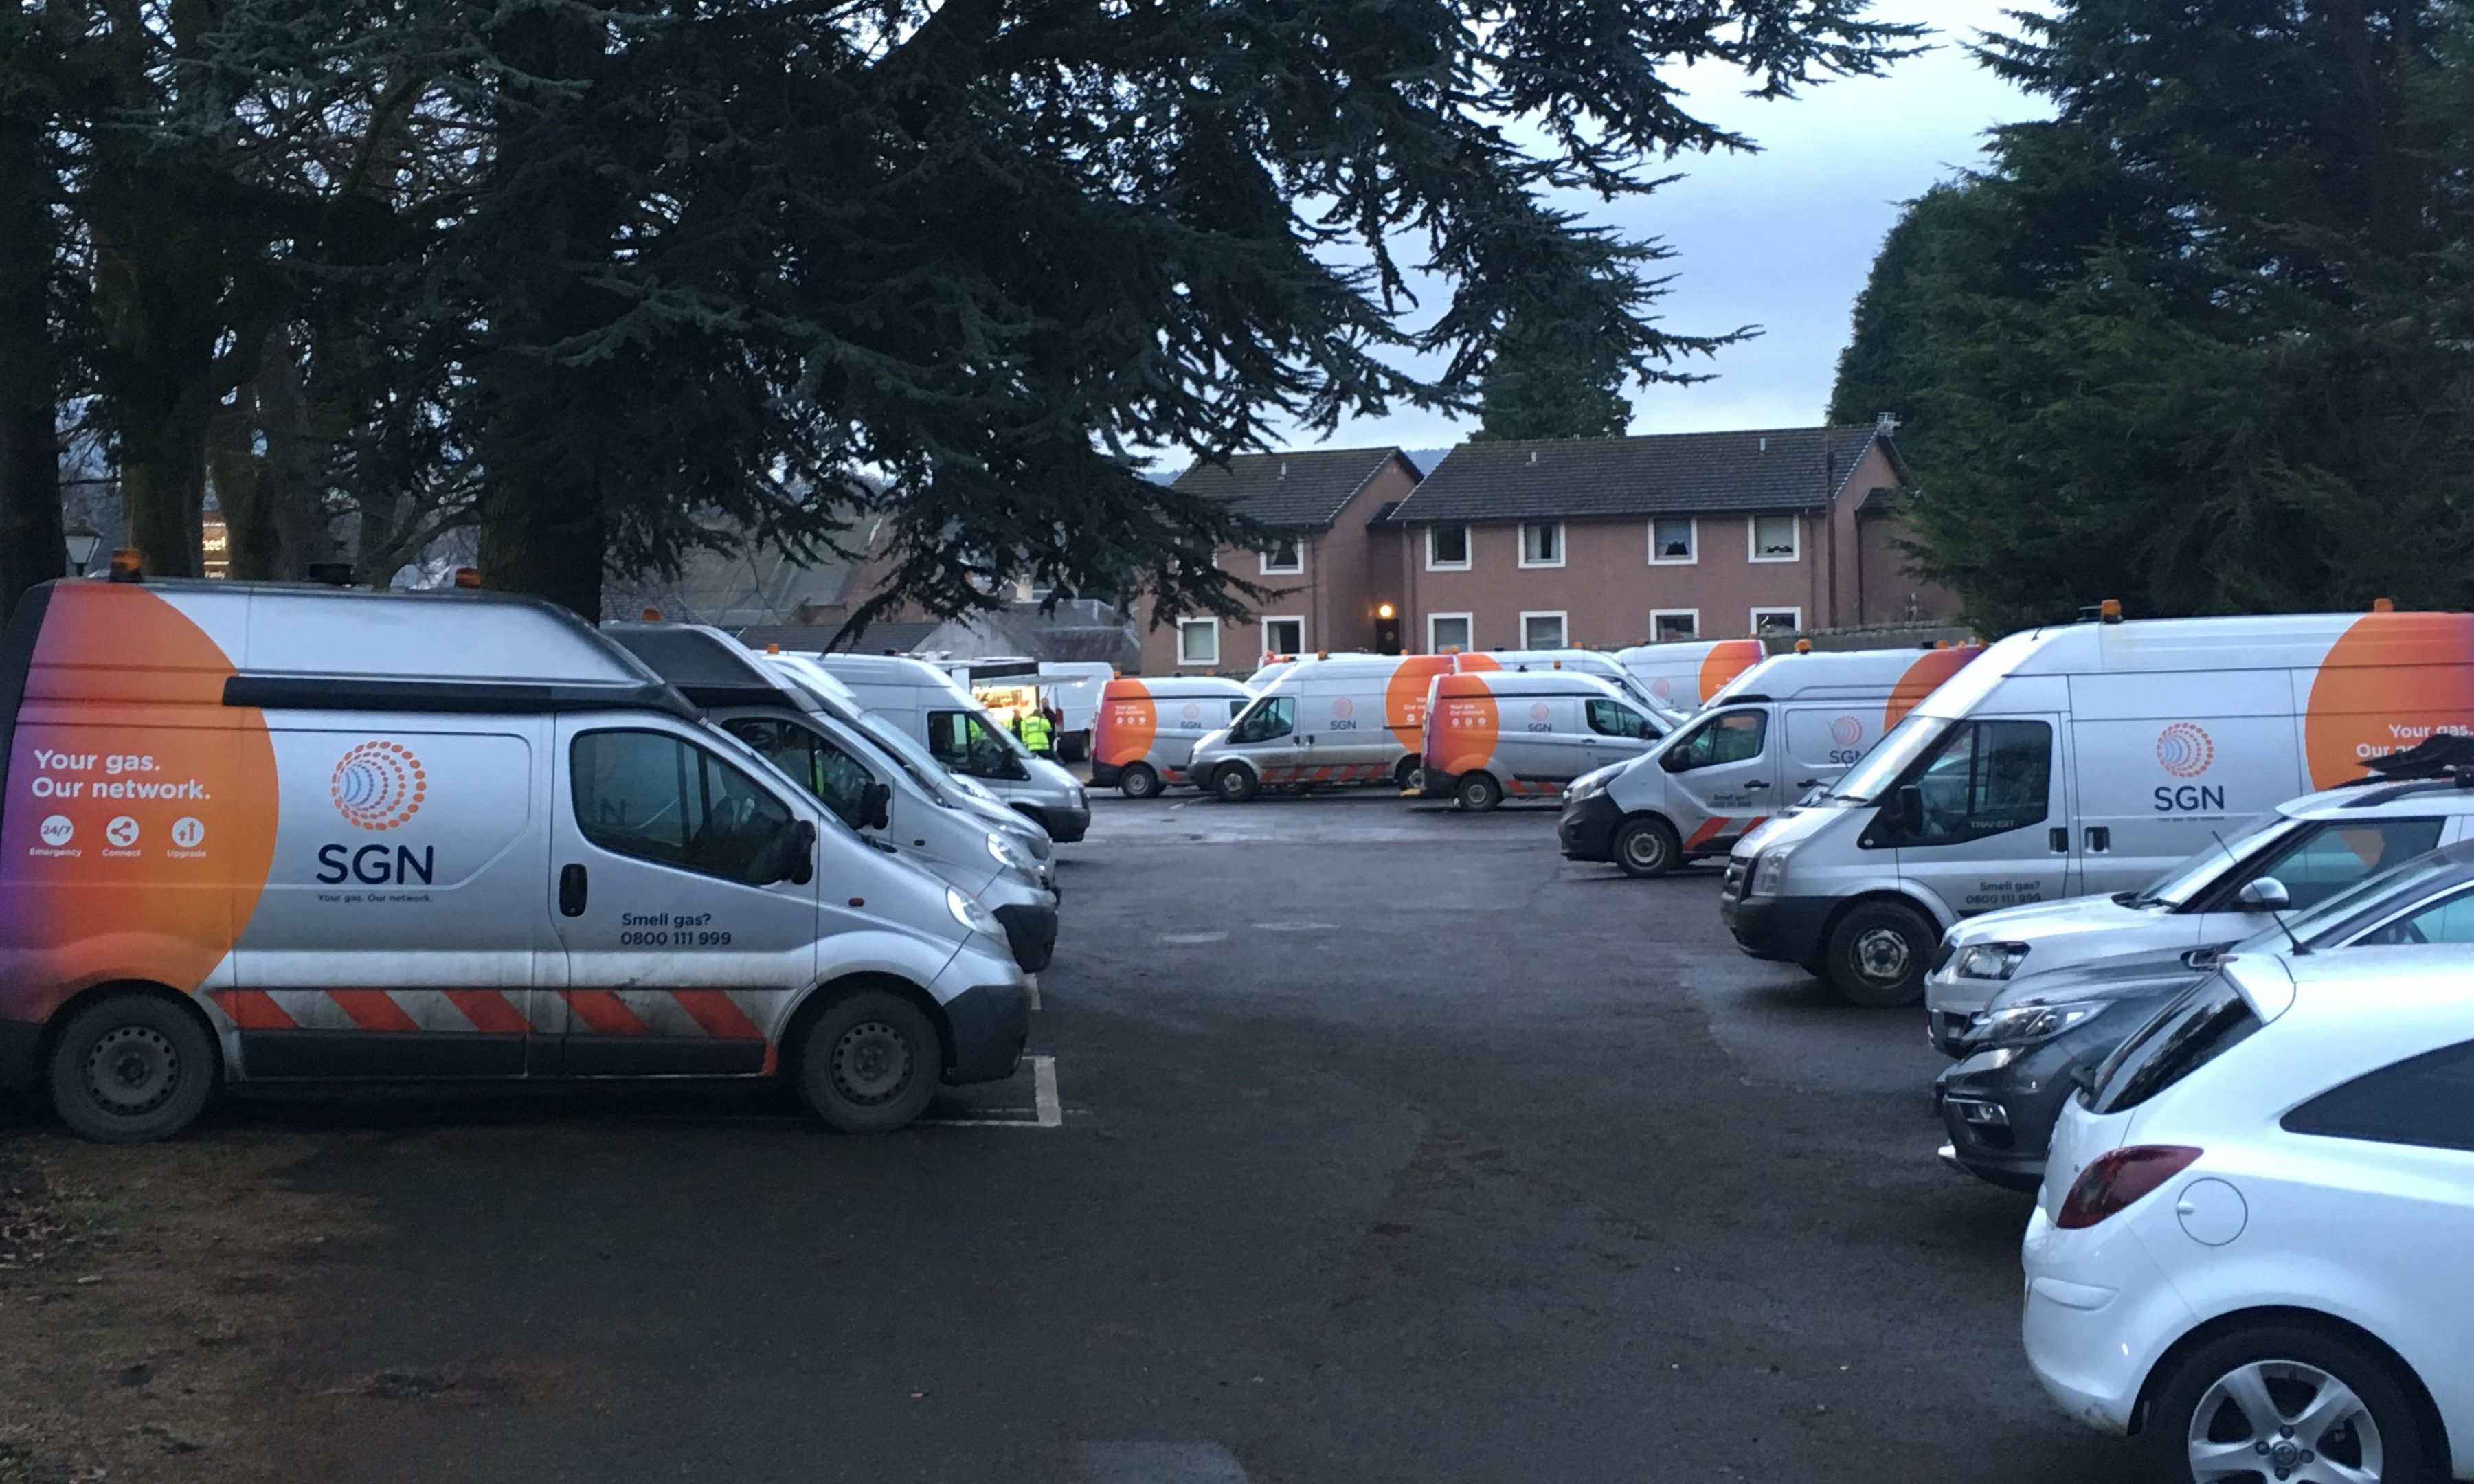 Engineers from across Scotland have arrived in Scone for major gas emergency work.